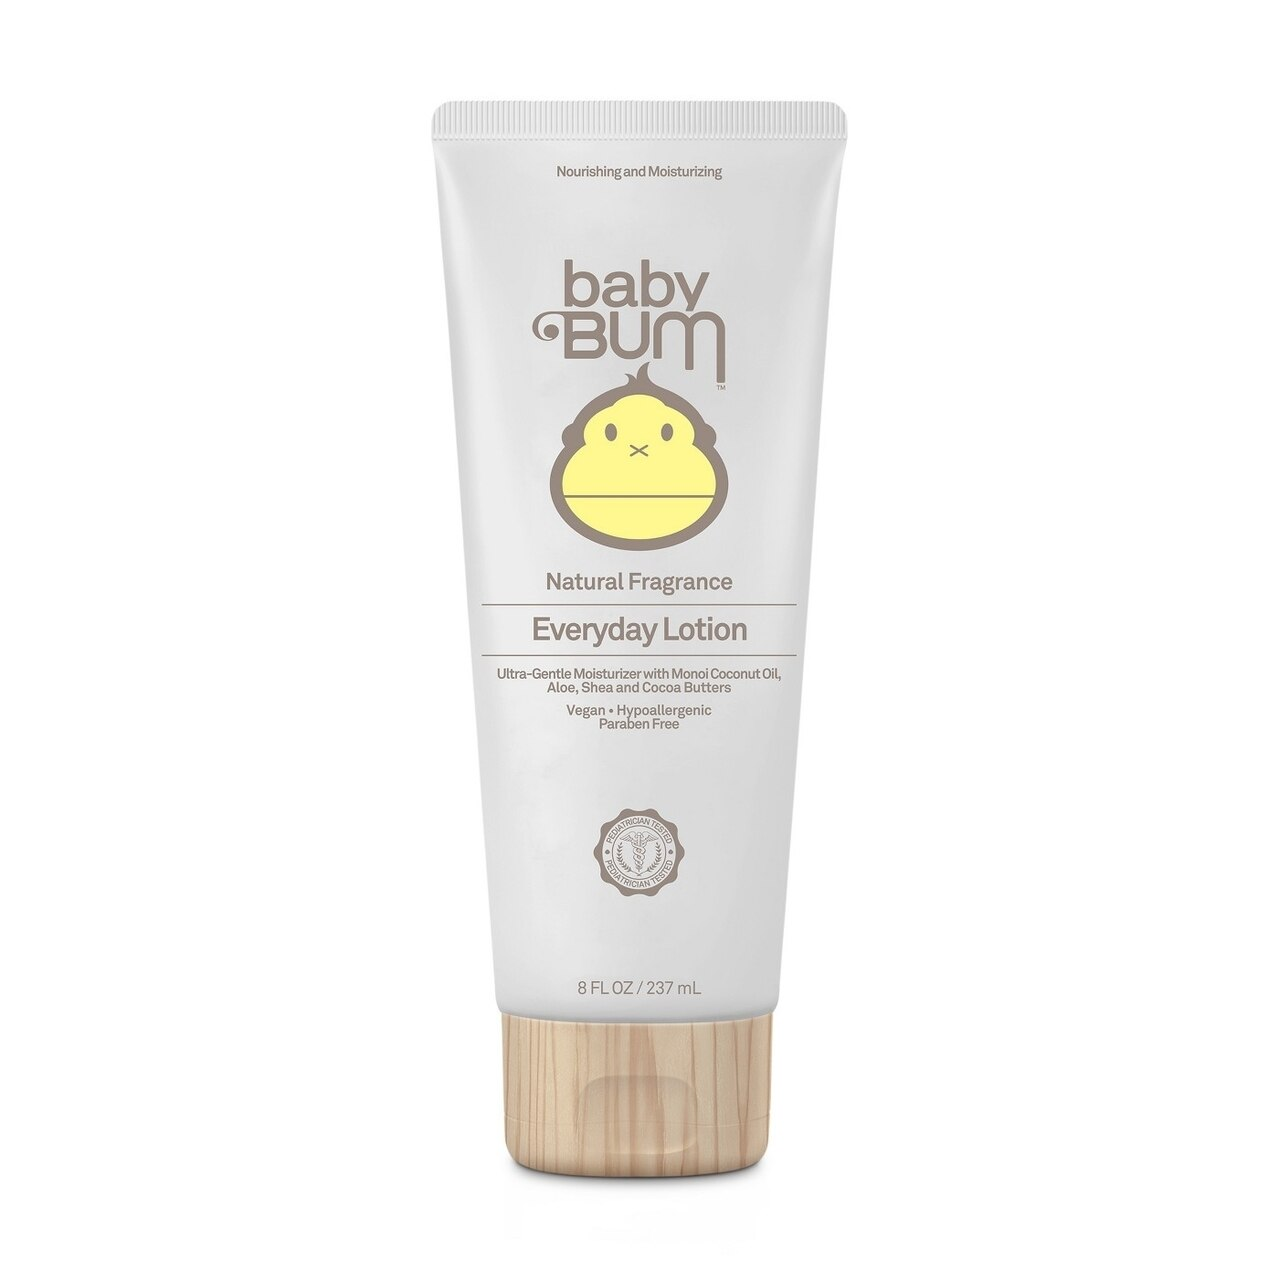 Everyday Lotion - Naturally Scented - BBUM